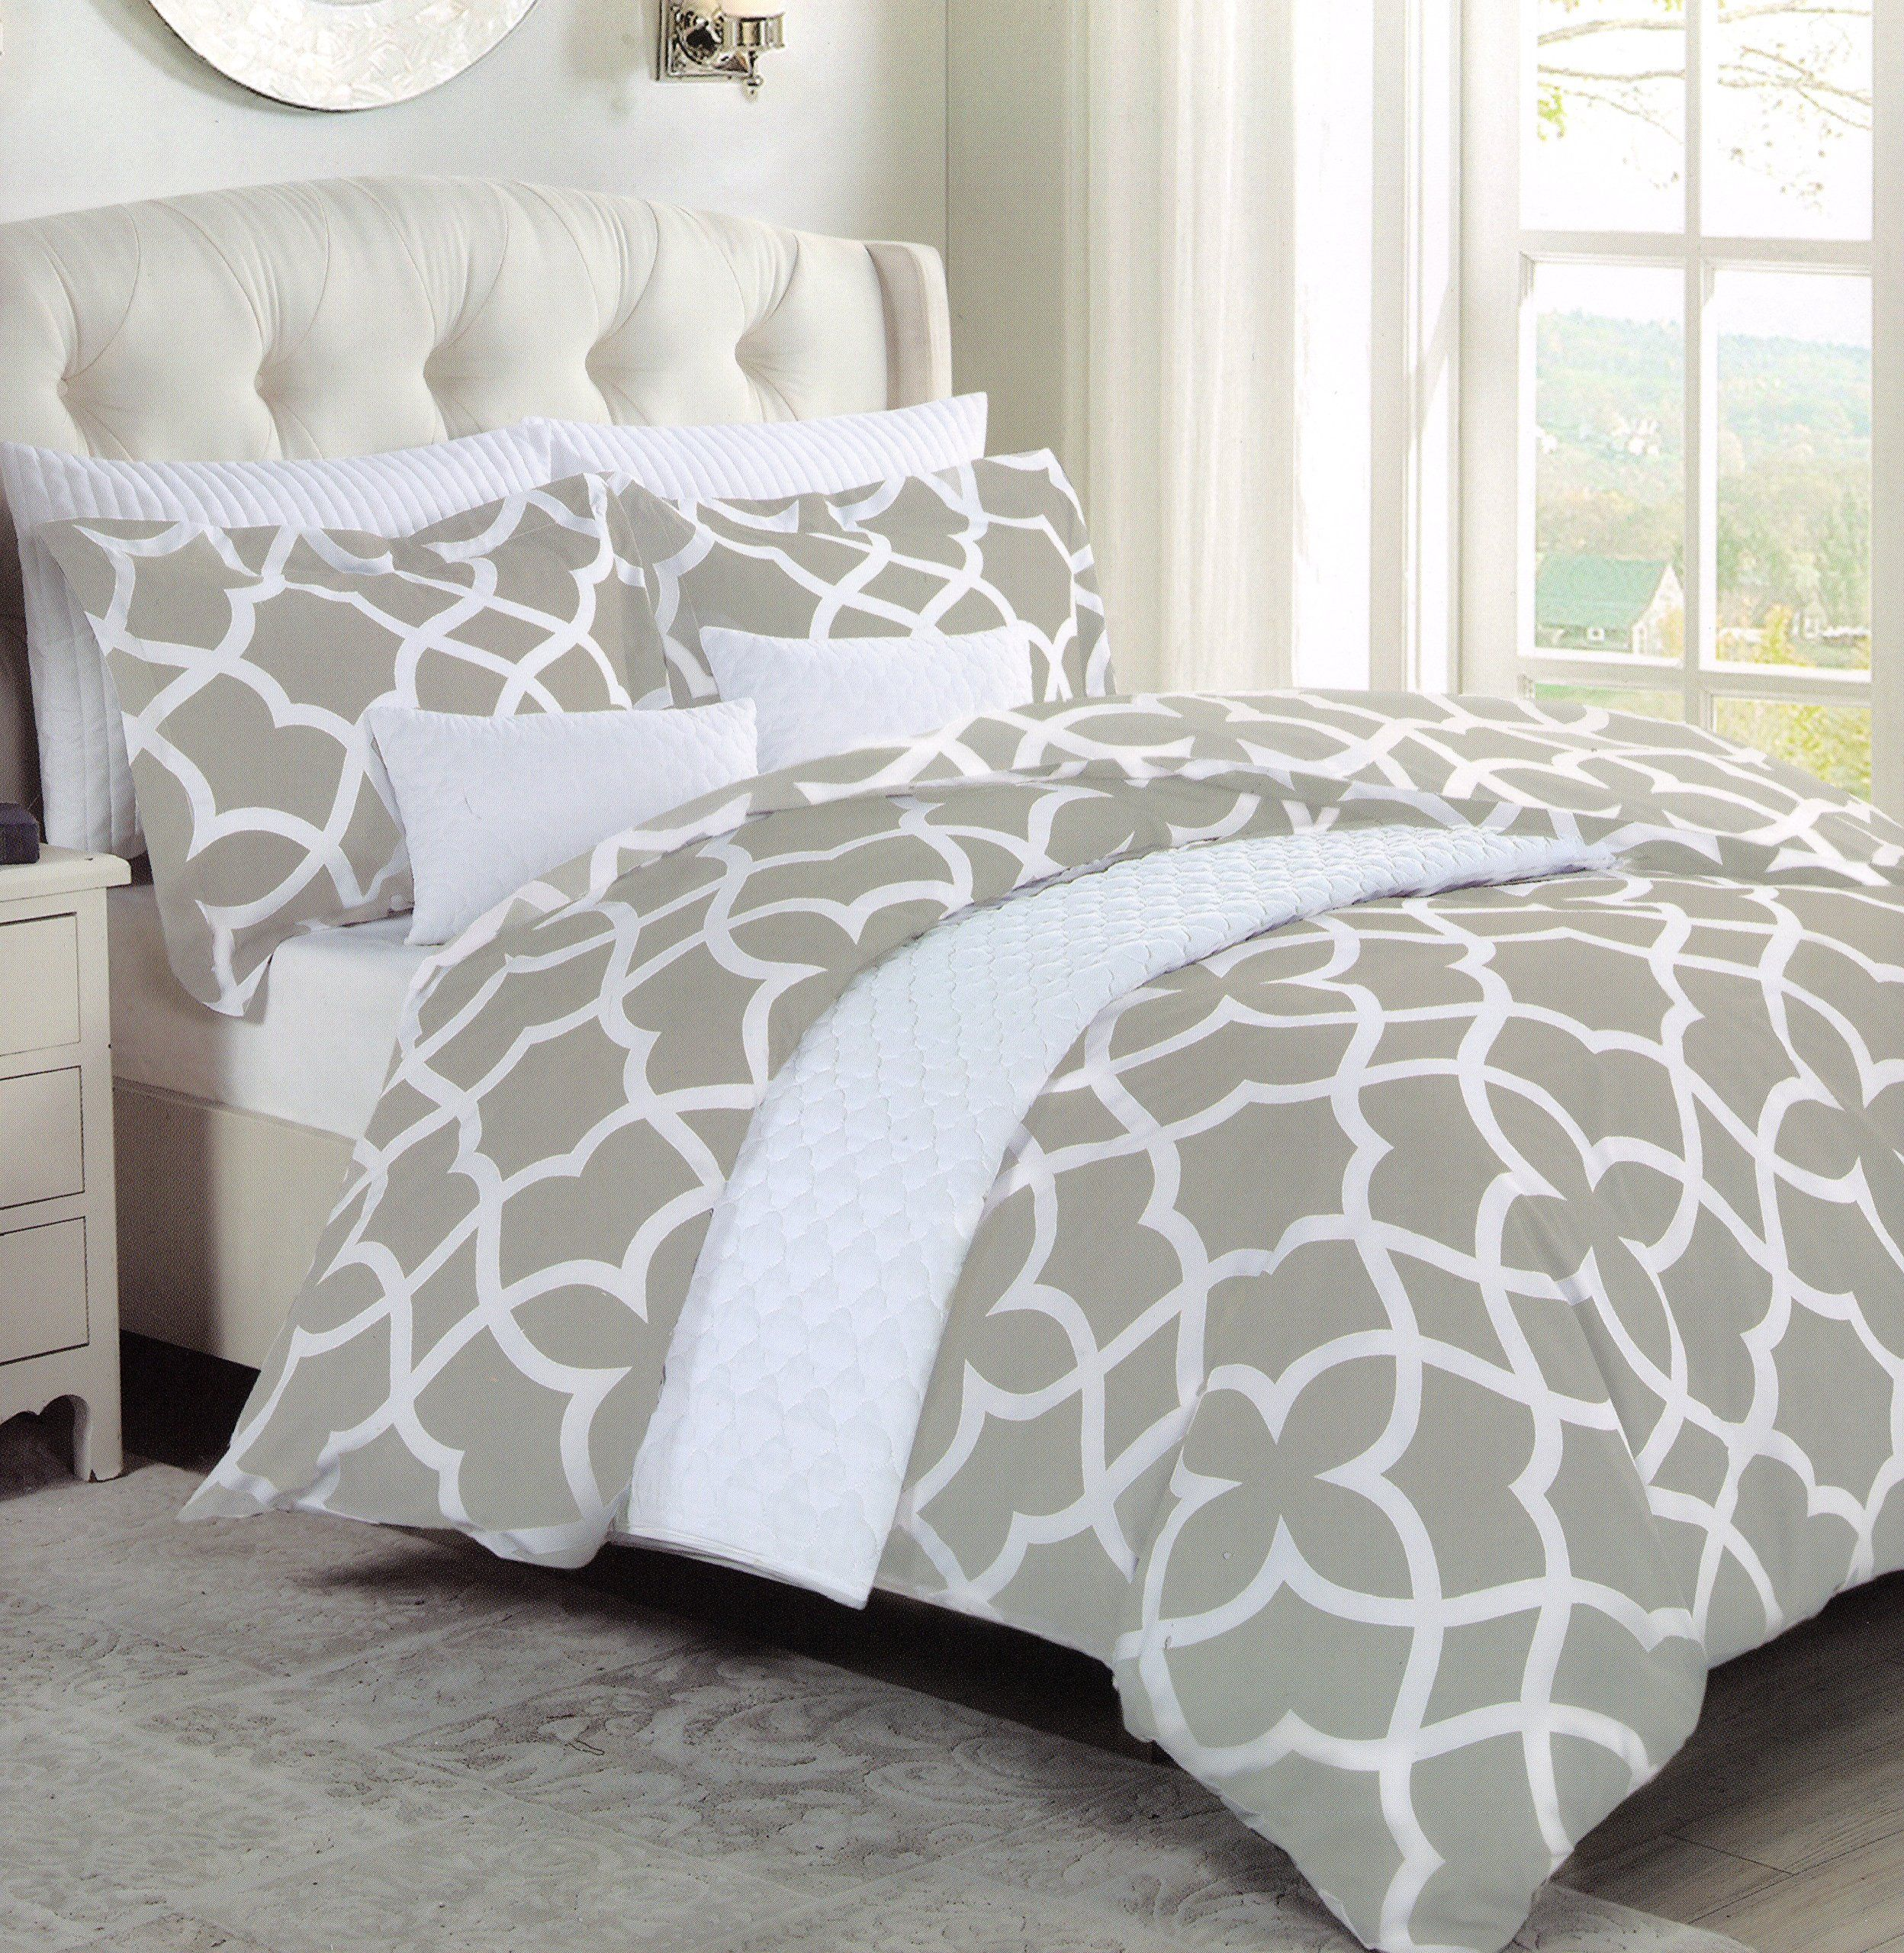 max studio jay grey modern lattice geo pattern full queen duvet cover and shams set gray white geometrical quatrefoil bedding awesome products selected